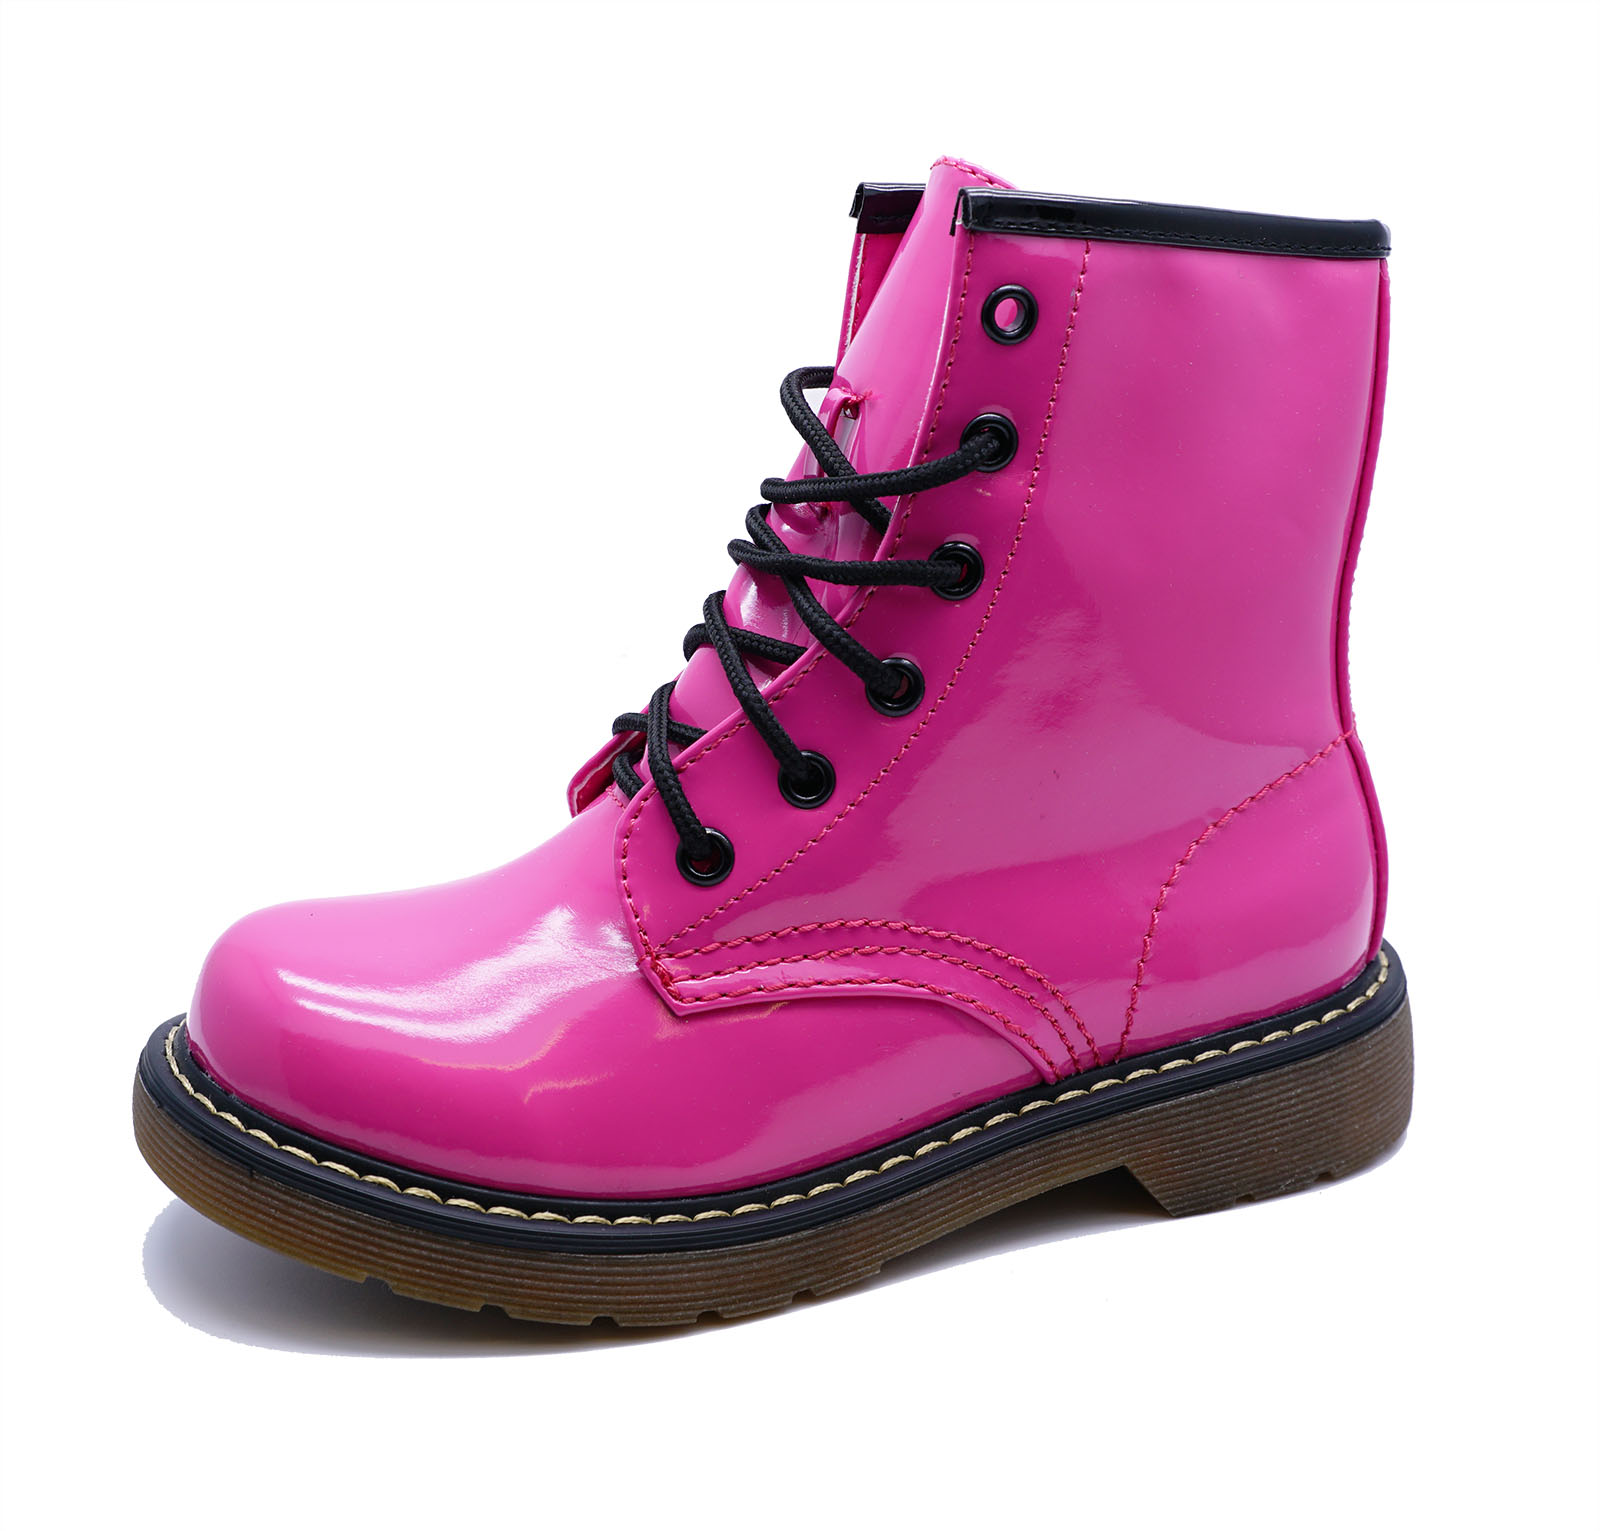 d0ed397ccaf5 GIRLS KIDS CHILDRENS PINK PATENT LACE-UP BOVVER RETRO ANKLE BOOTS ...